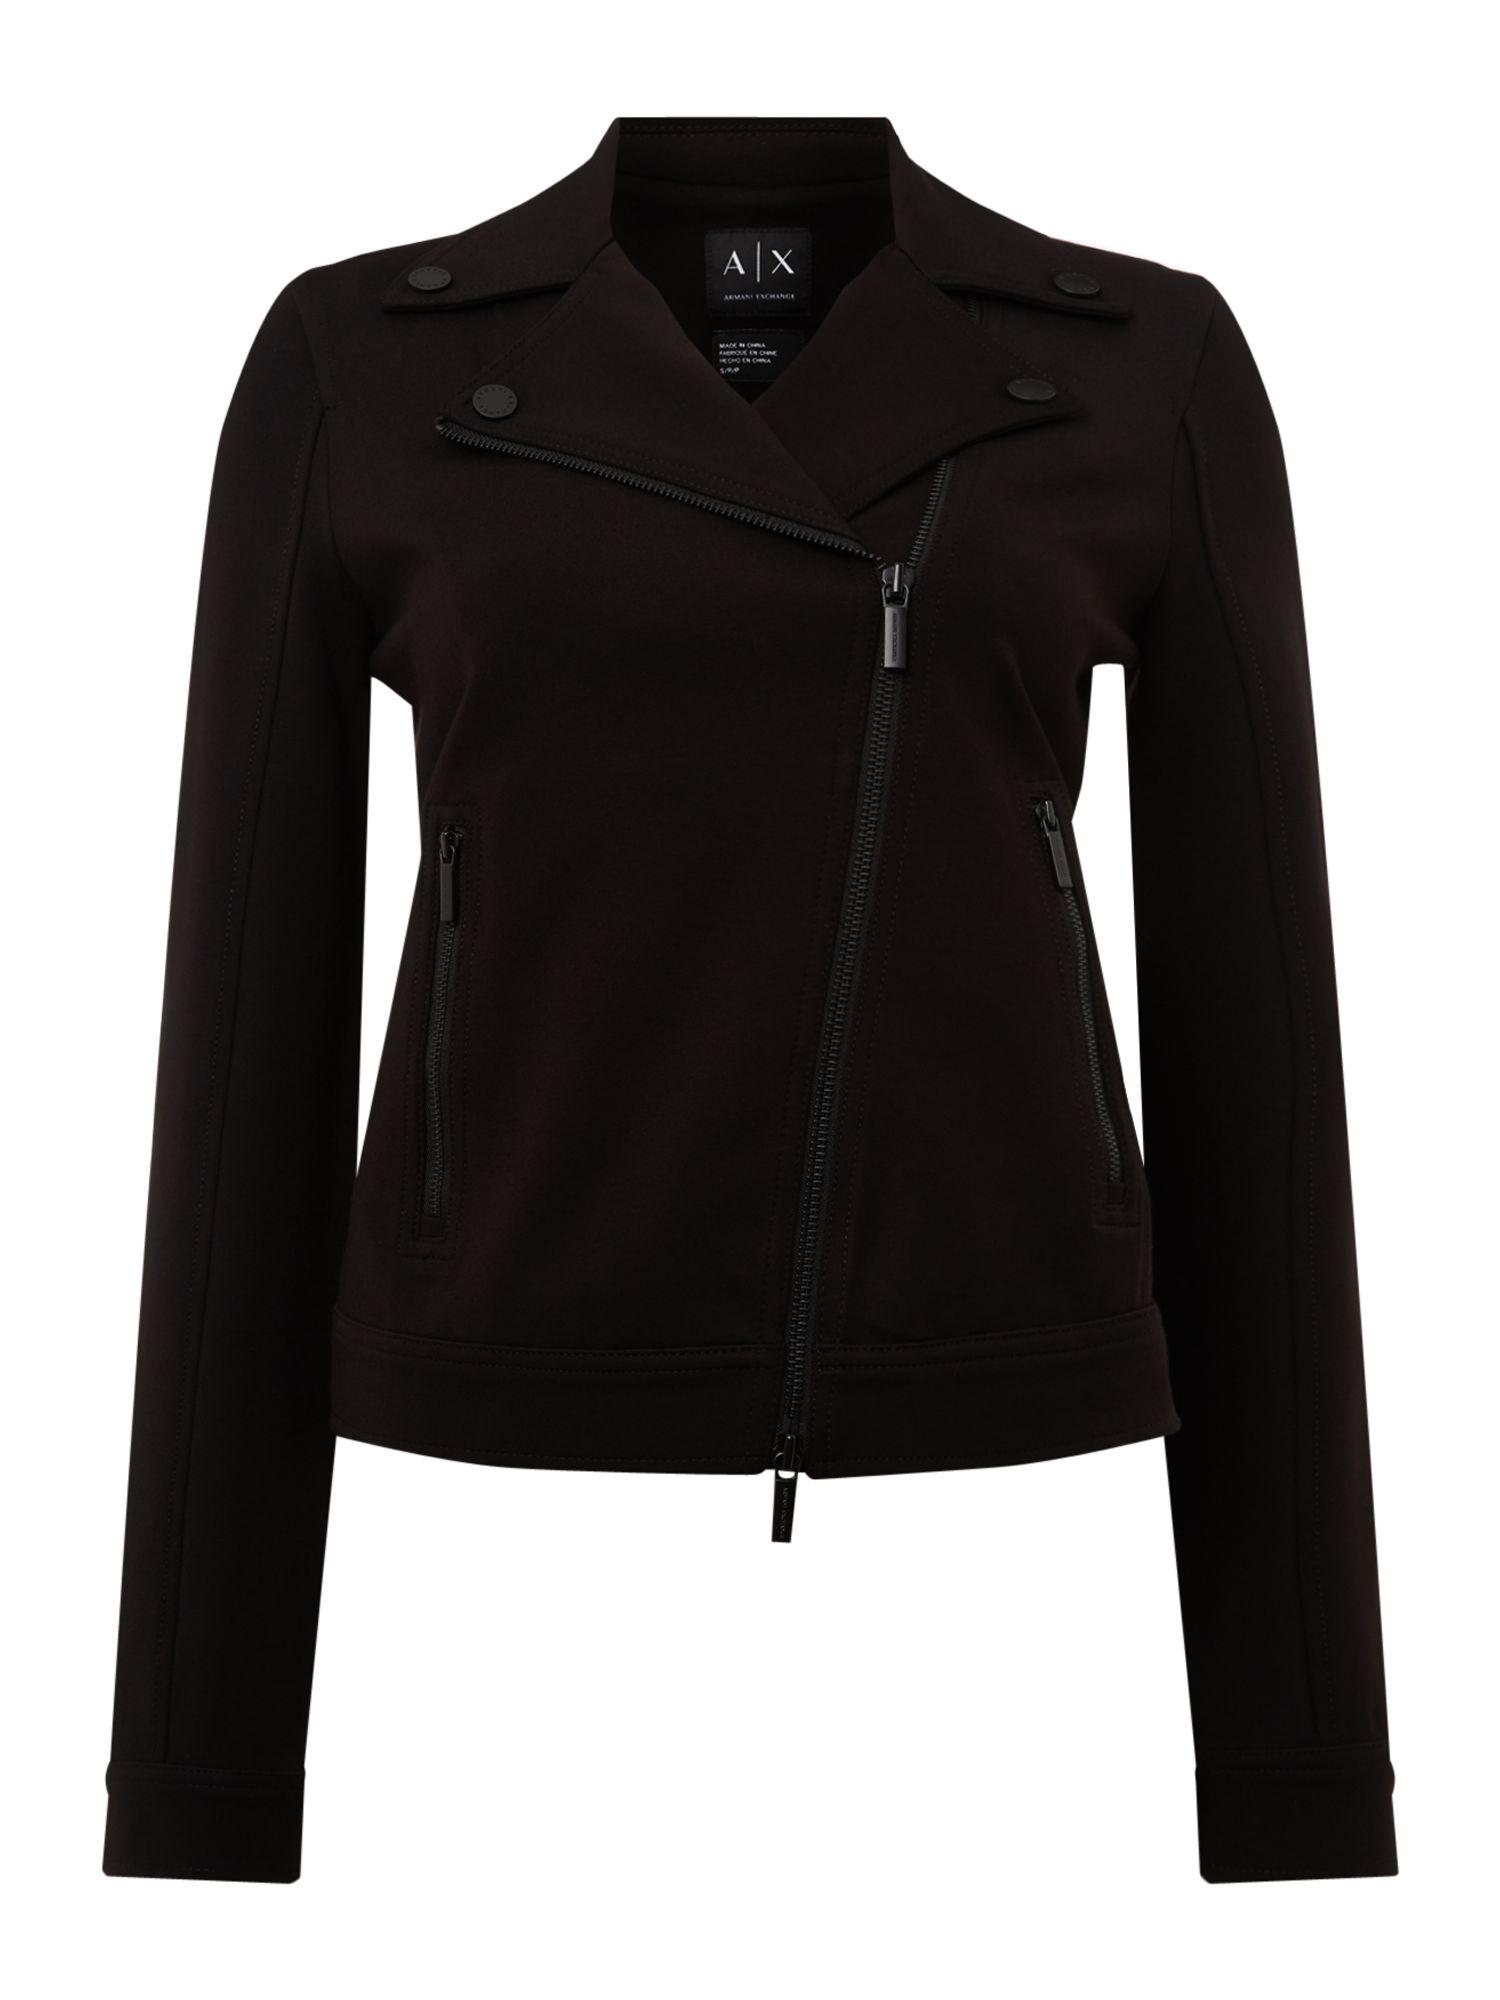 Armani Exchange Jacket in Black, Black